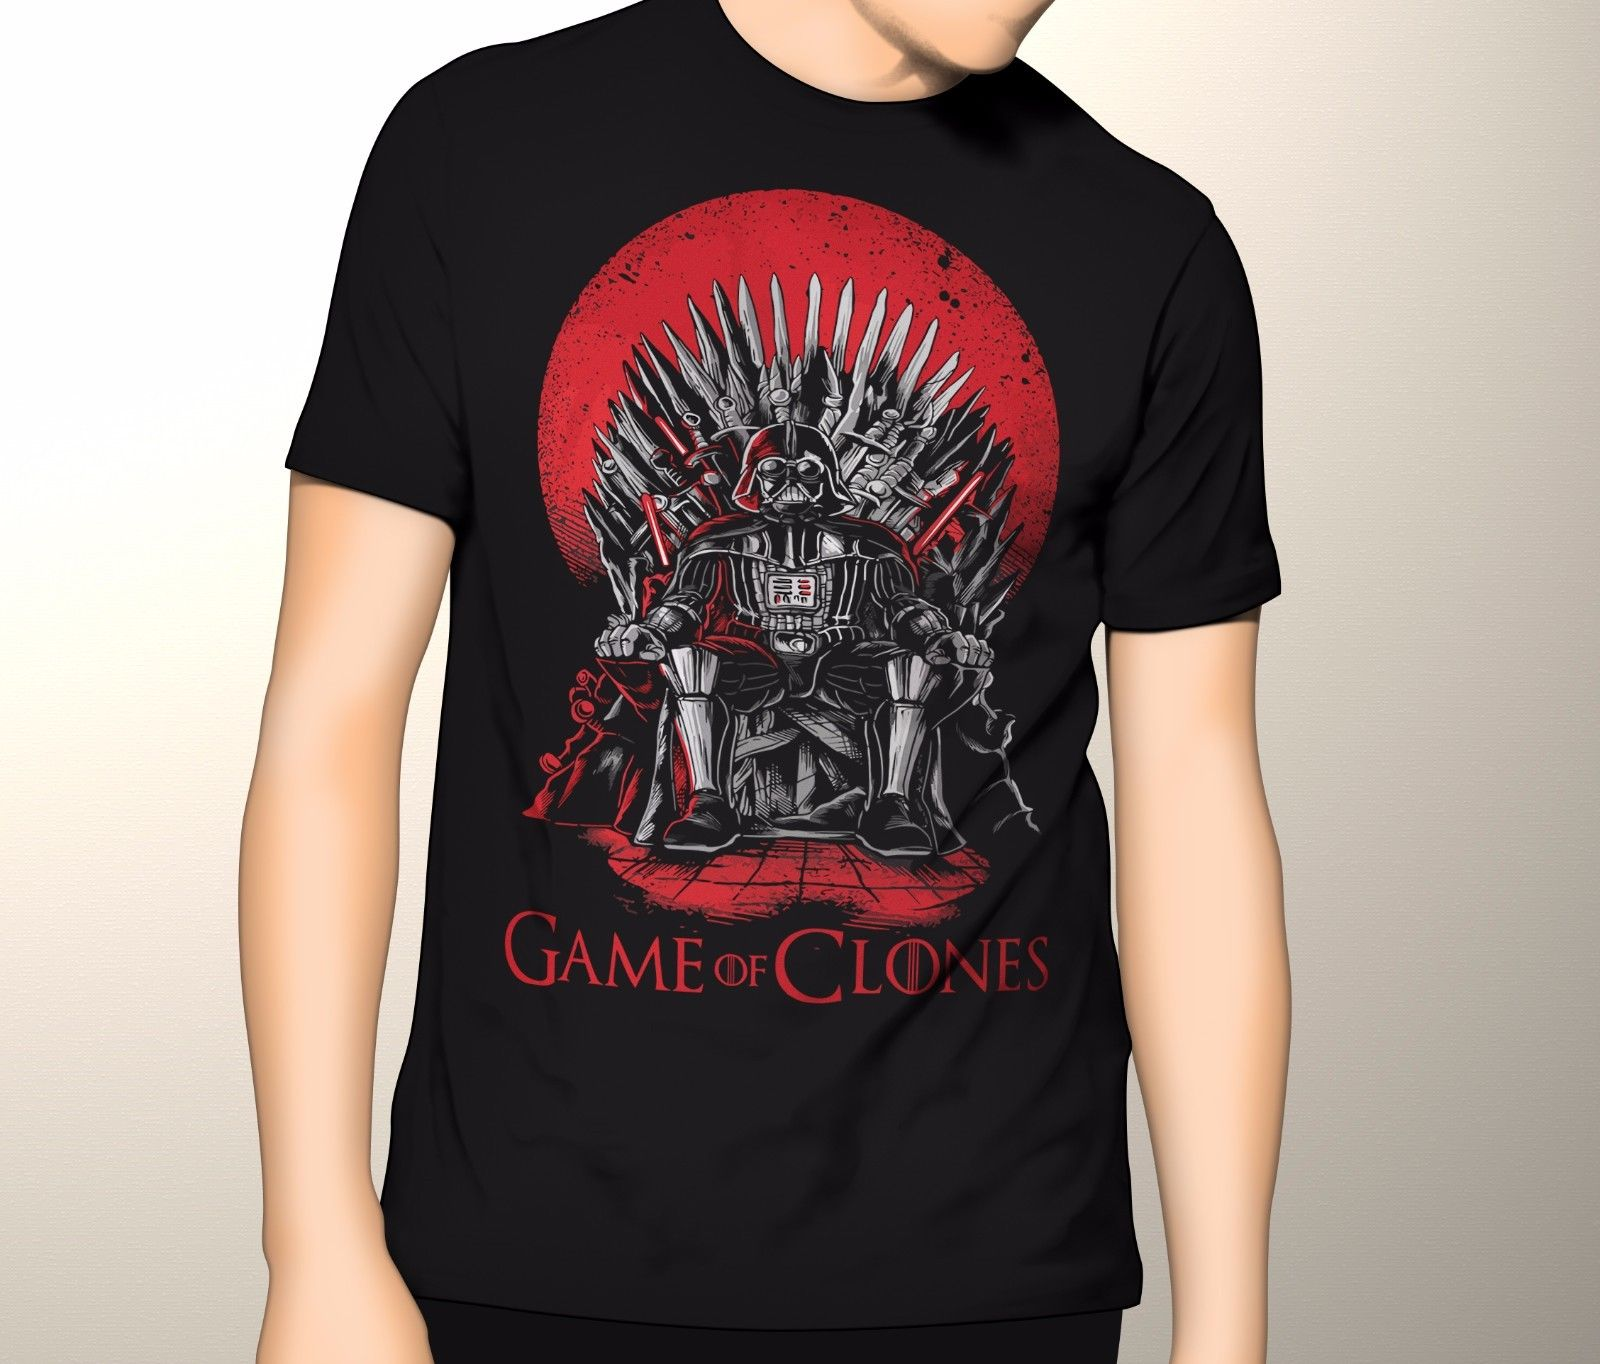 Game of Thrones Shirt, Star Wars and Game of Thrones, Game of Clones S-5XL T Shits Printing Short Sleeve Short Sleeve Tops